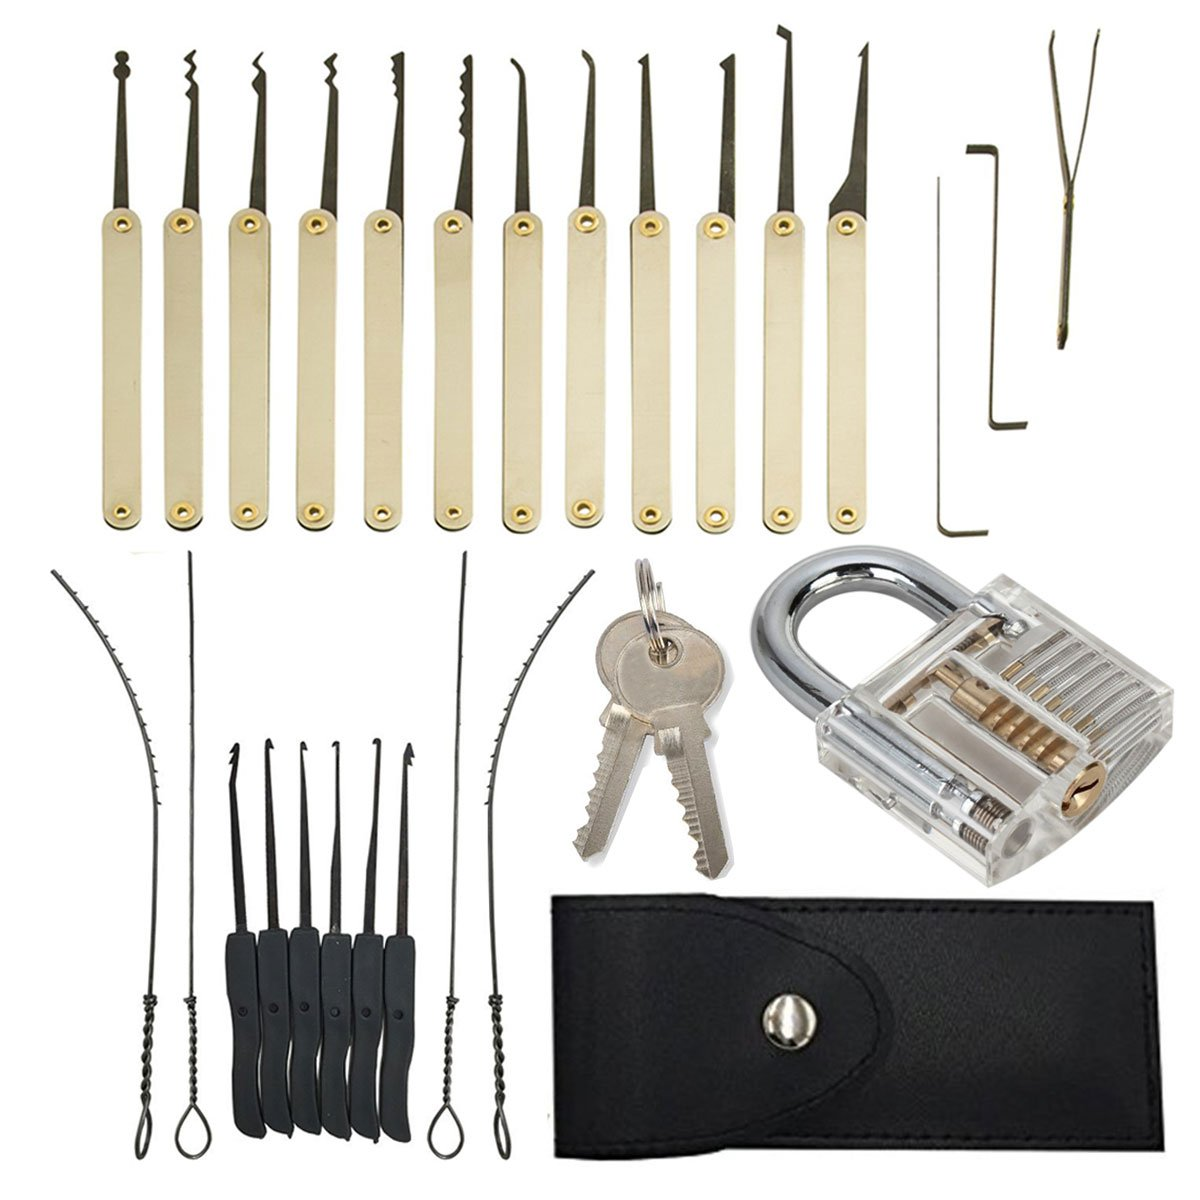 Geepro 25 Pieces Professional Practice Lock Pick Set Include Transparent 10pcs Lockpick Training Tool Various Picks Crochet Hook Leather Pouch For Locksmith Lockpicking Key Extractor Exercise